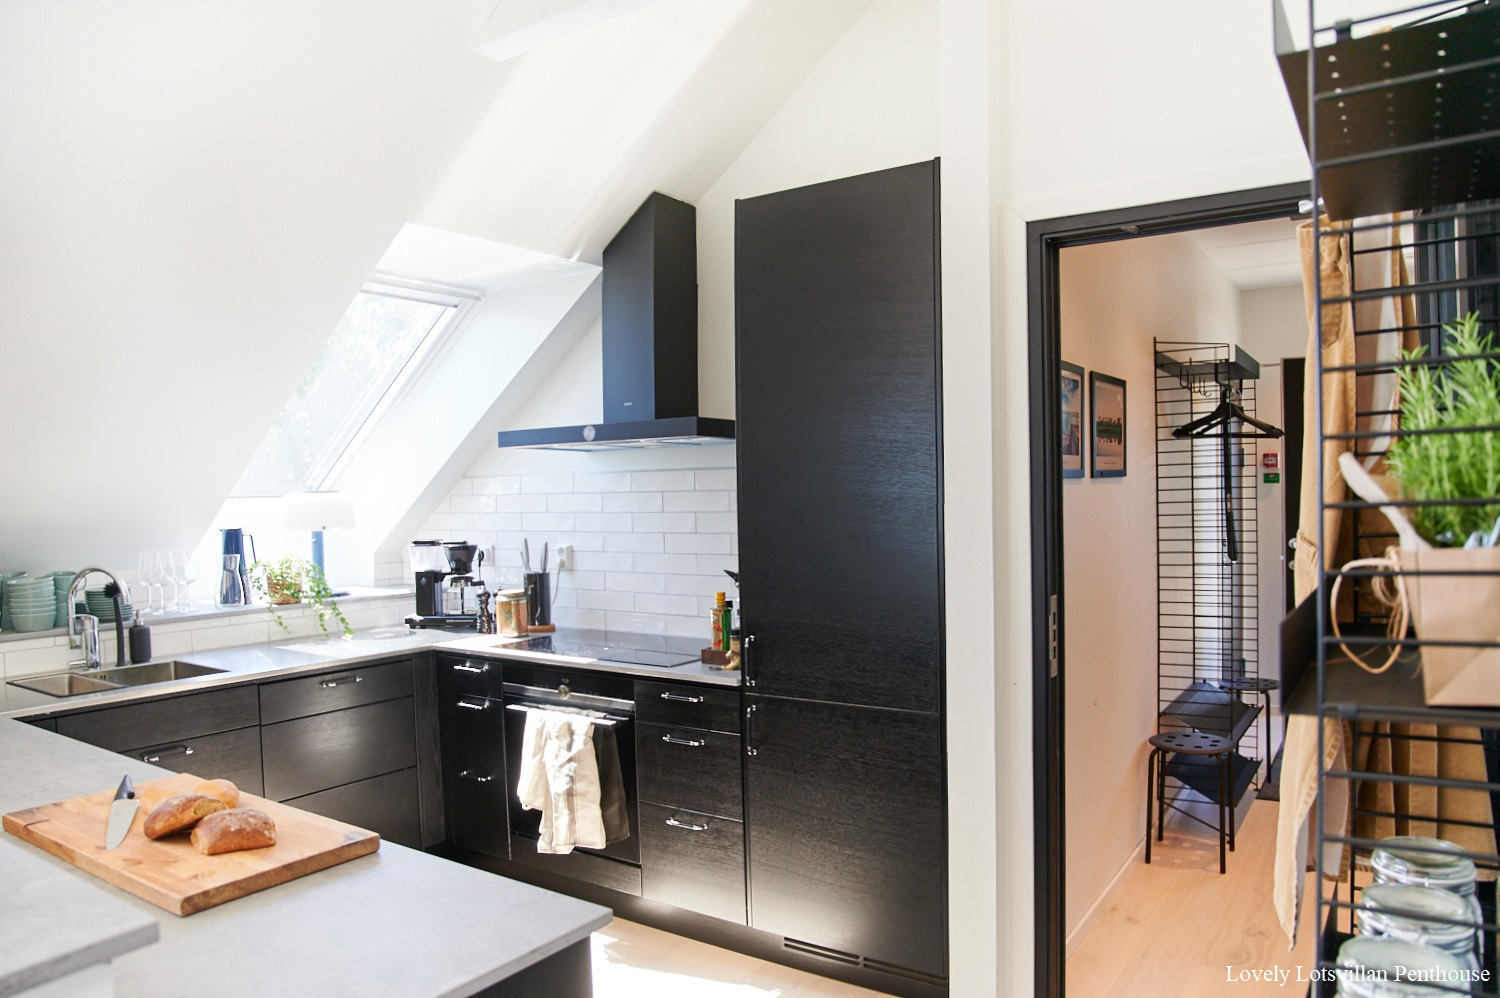 Lovely Lotsvillan Penthouse-kitchen